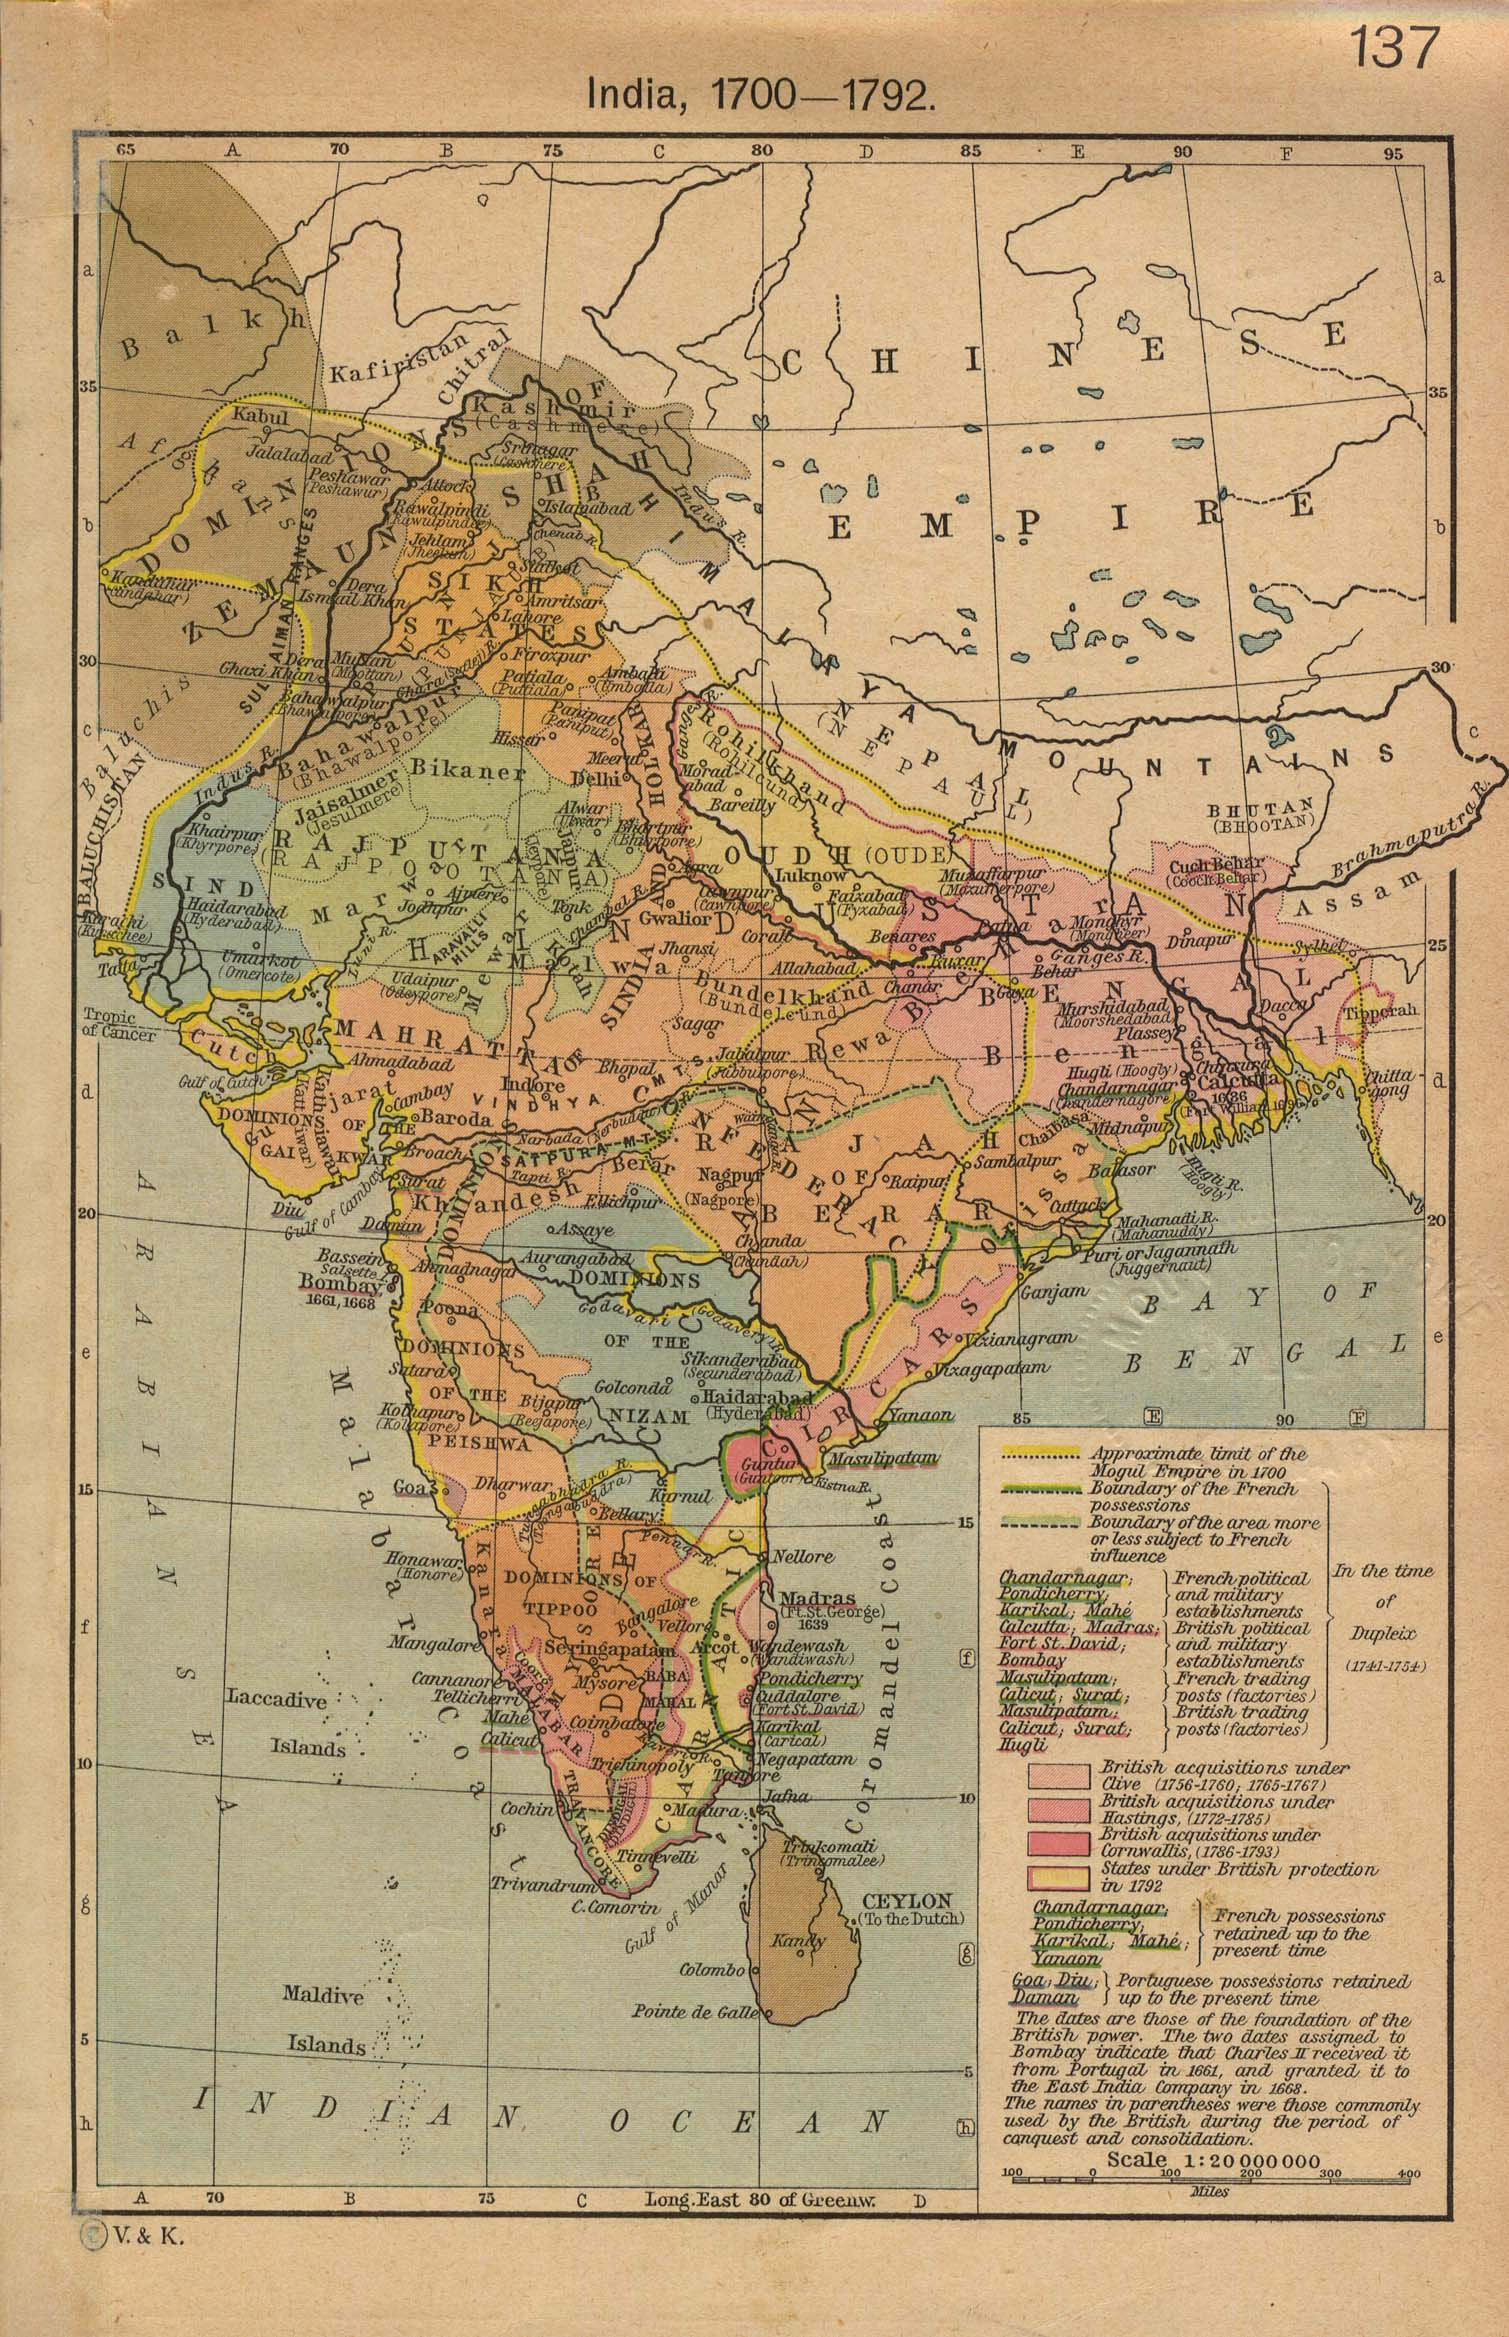 india-historical-map-1700-1792-from-The-Historical-Atlas